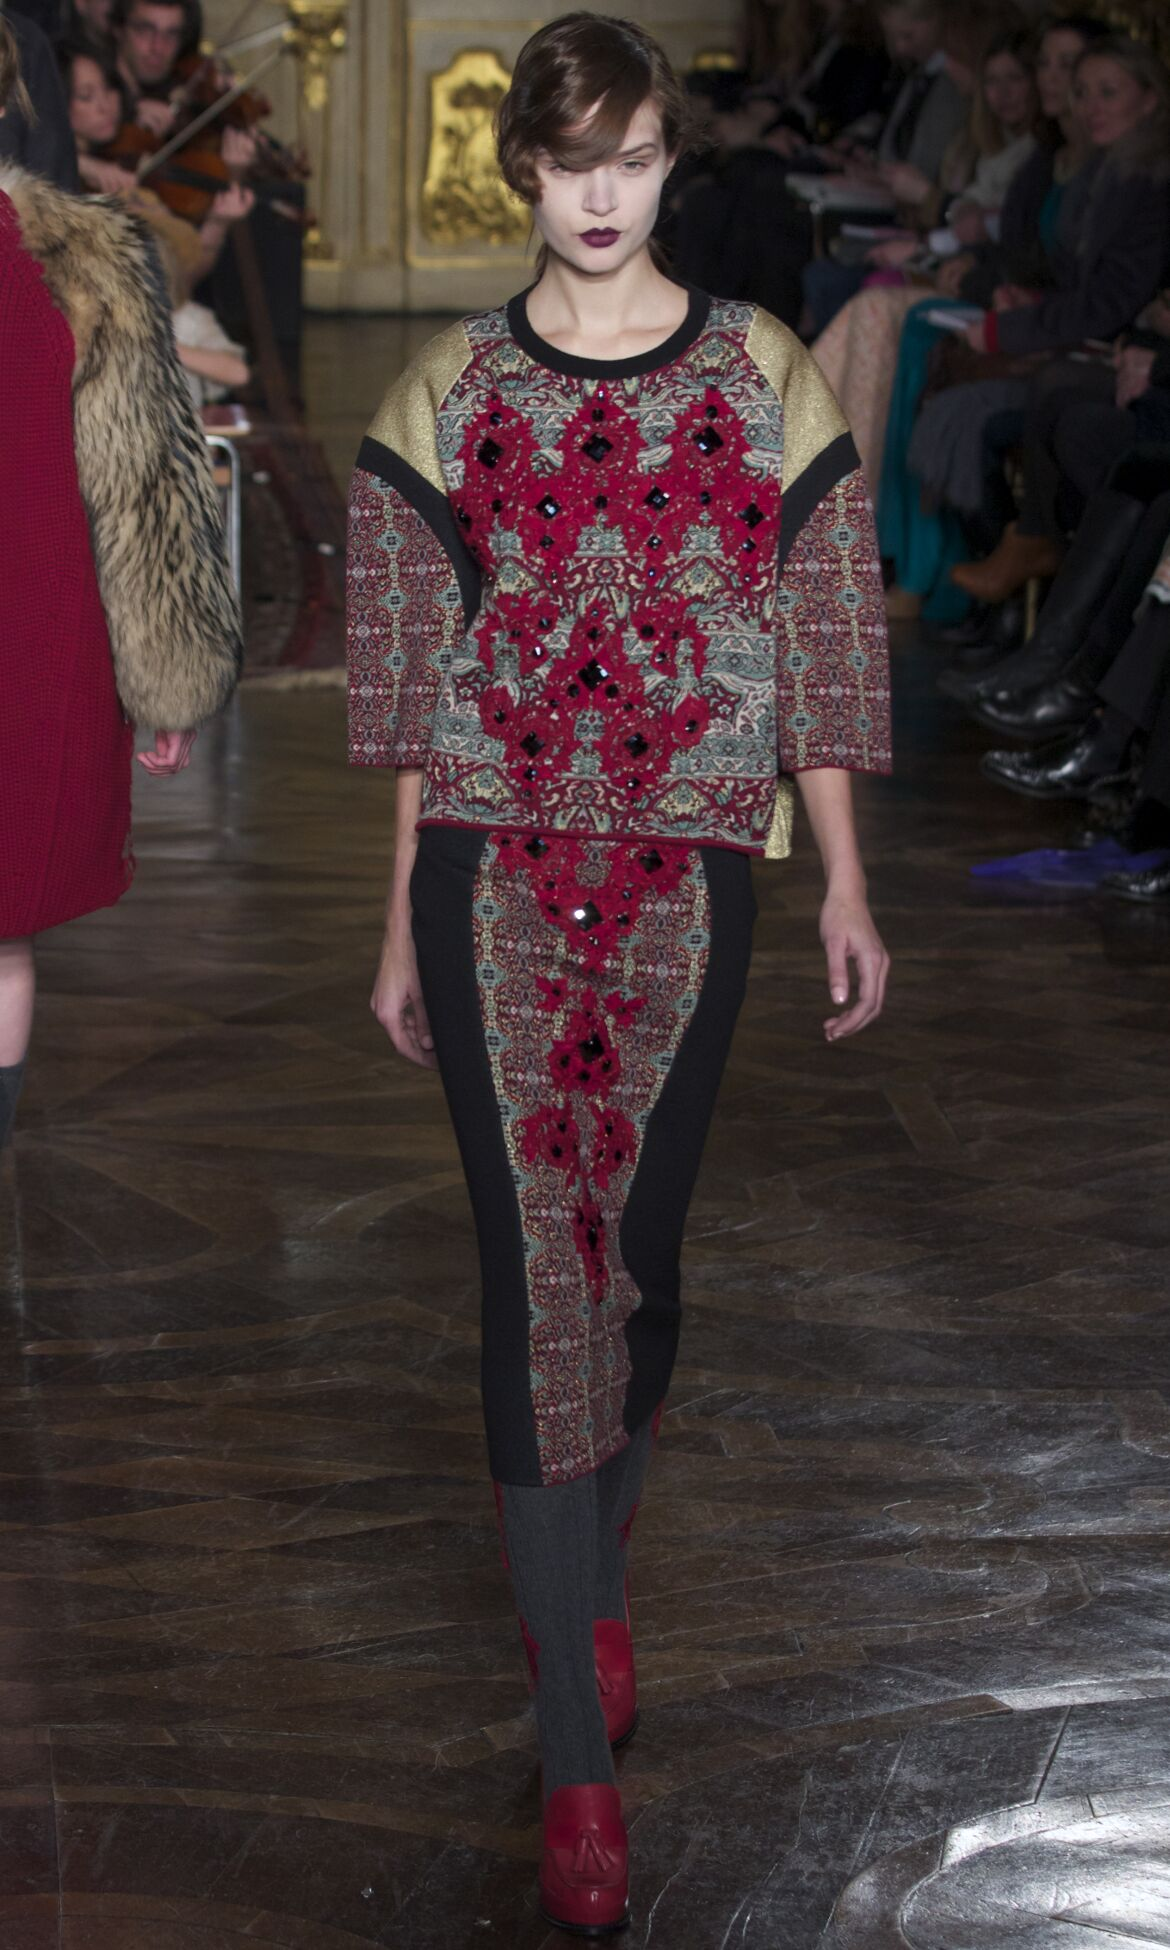 Antonio Marras Fashion Show FW 2013 2014